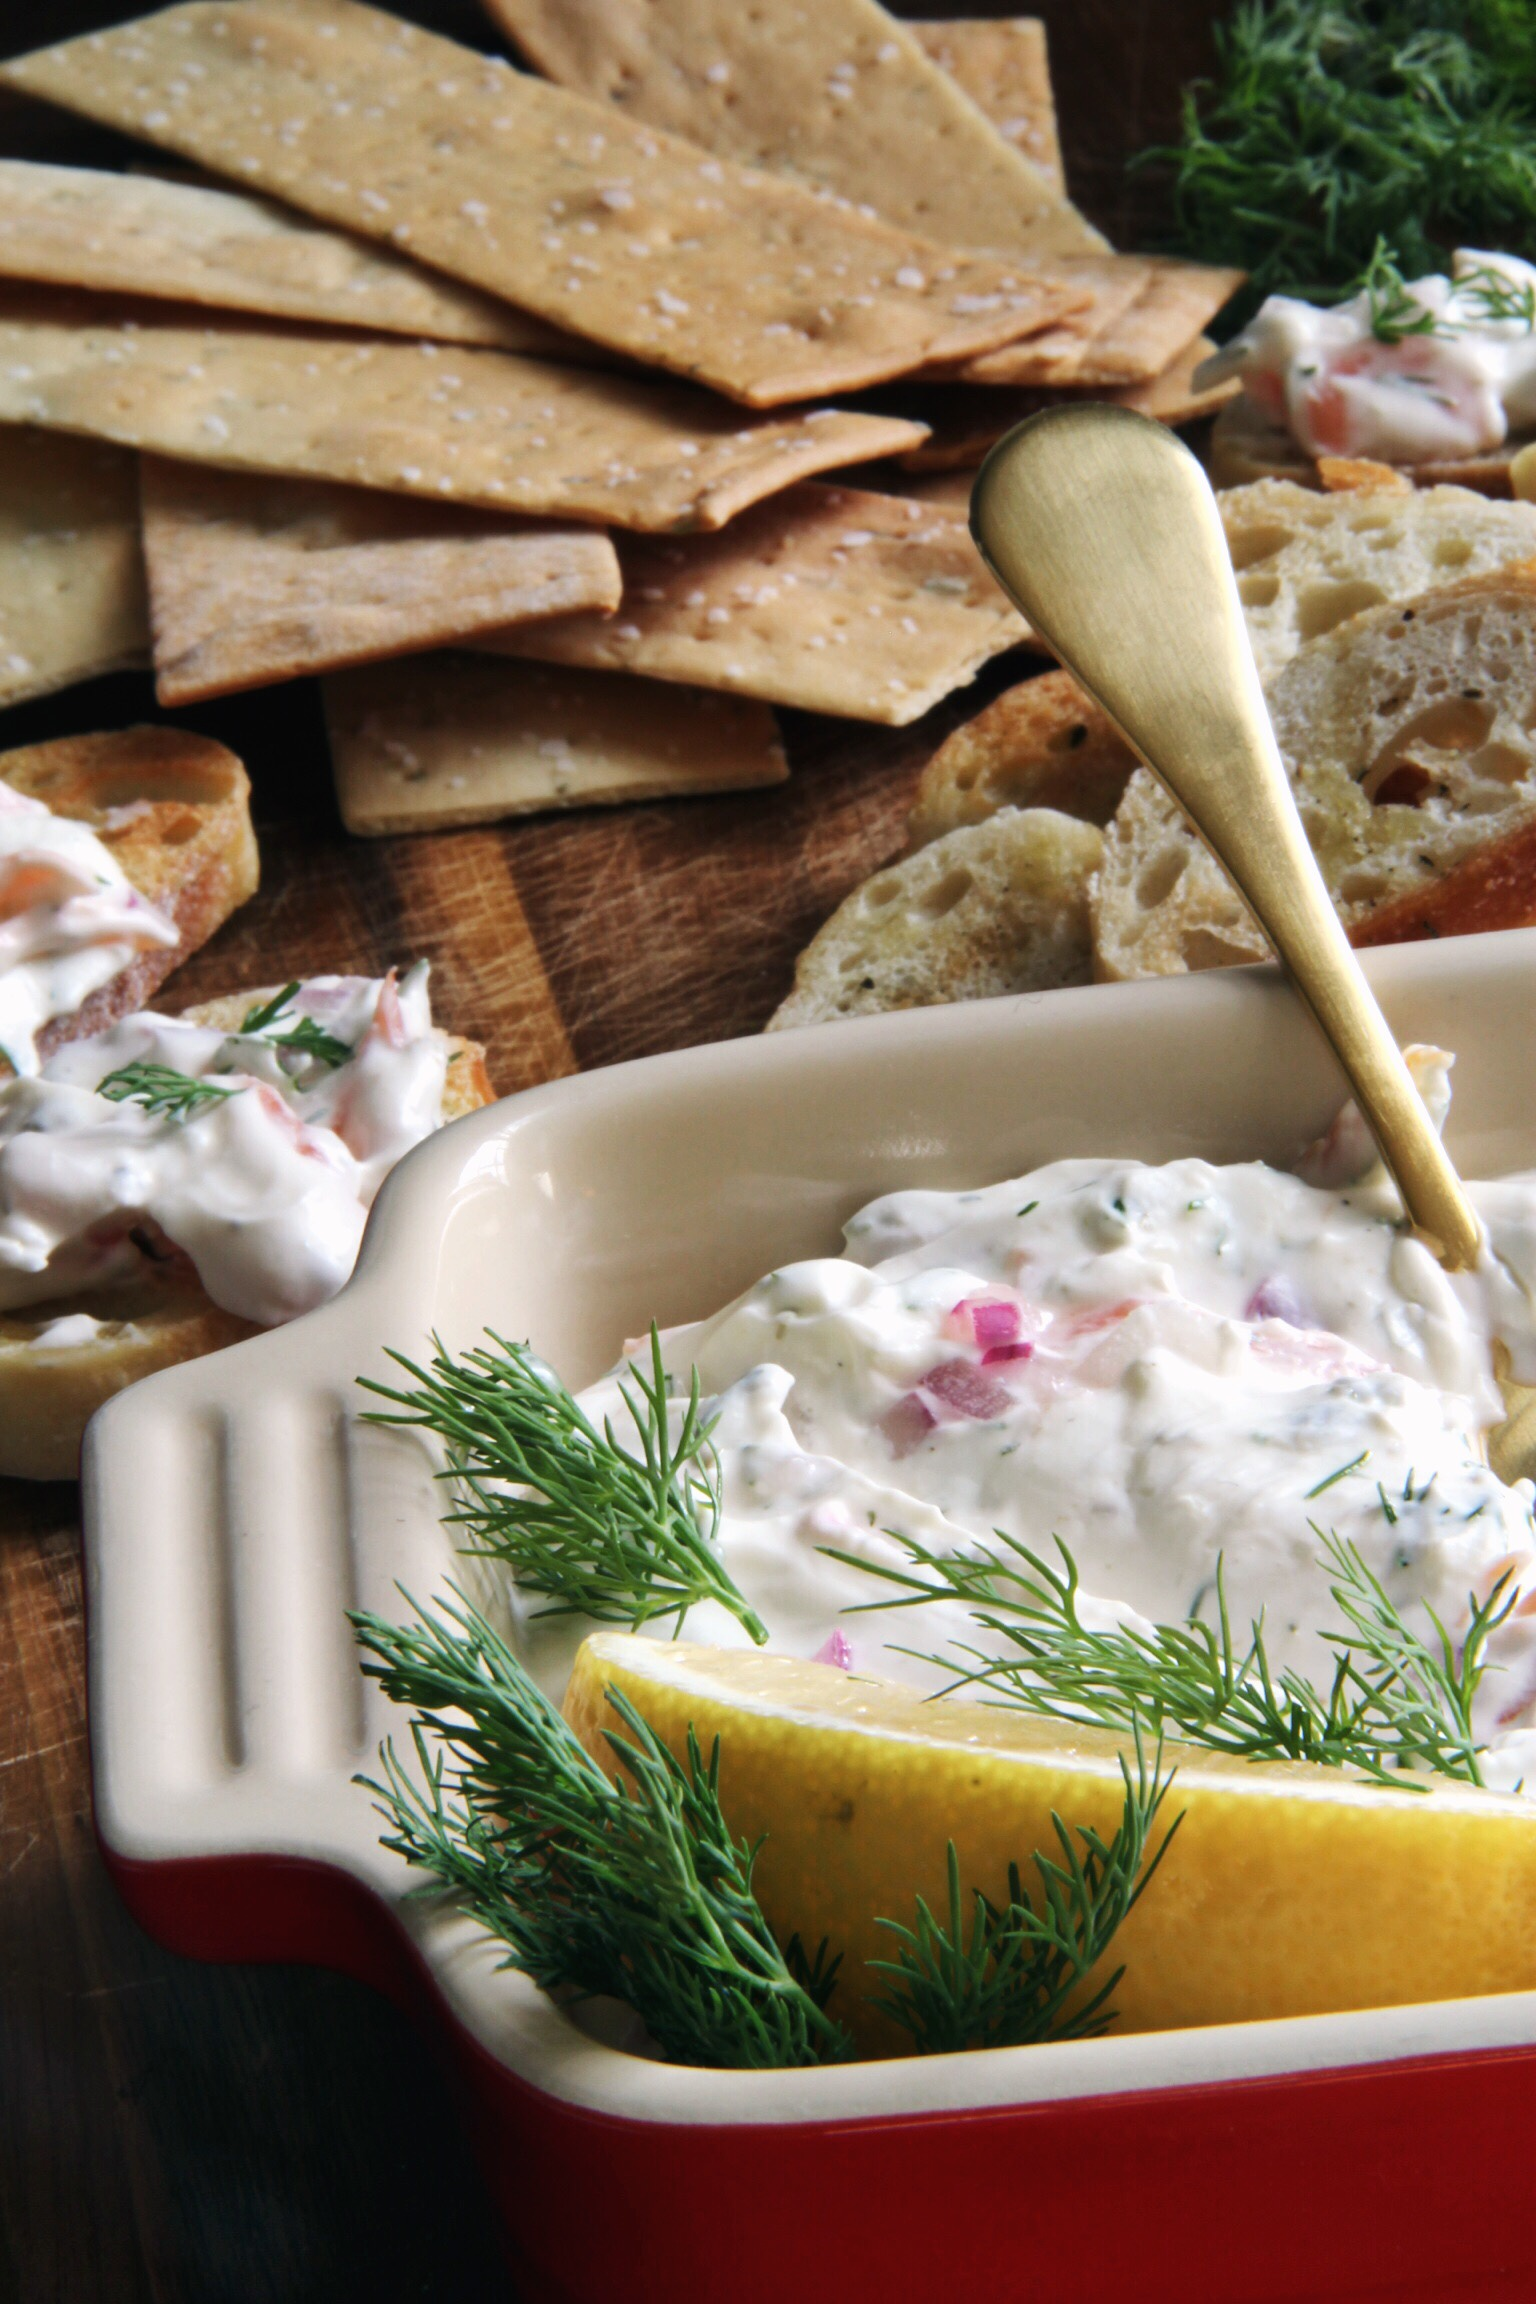 Smoked salmon spread with lemon and dill - The Pastiche